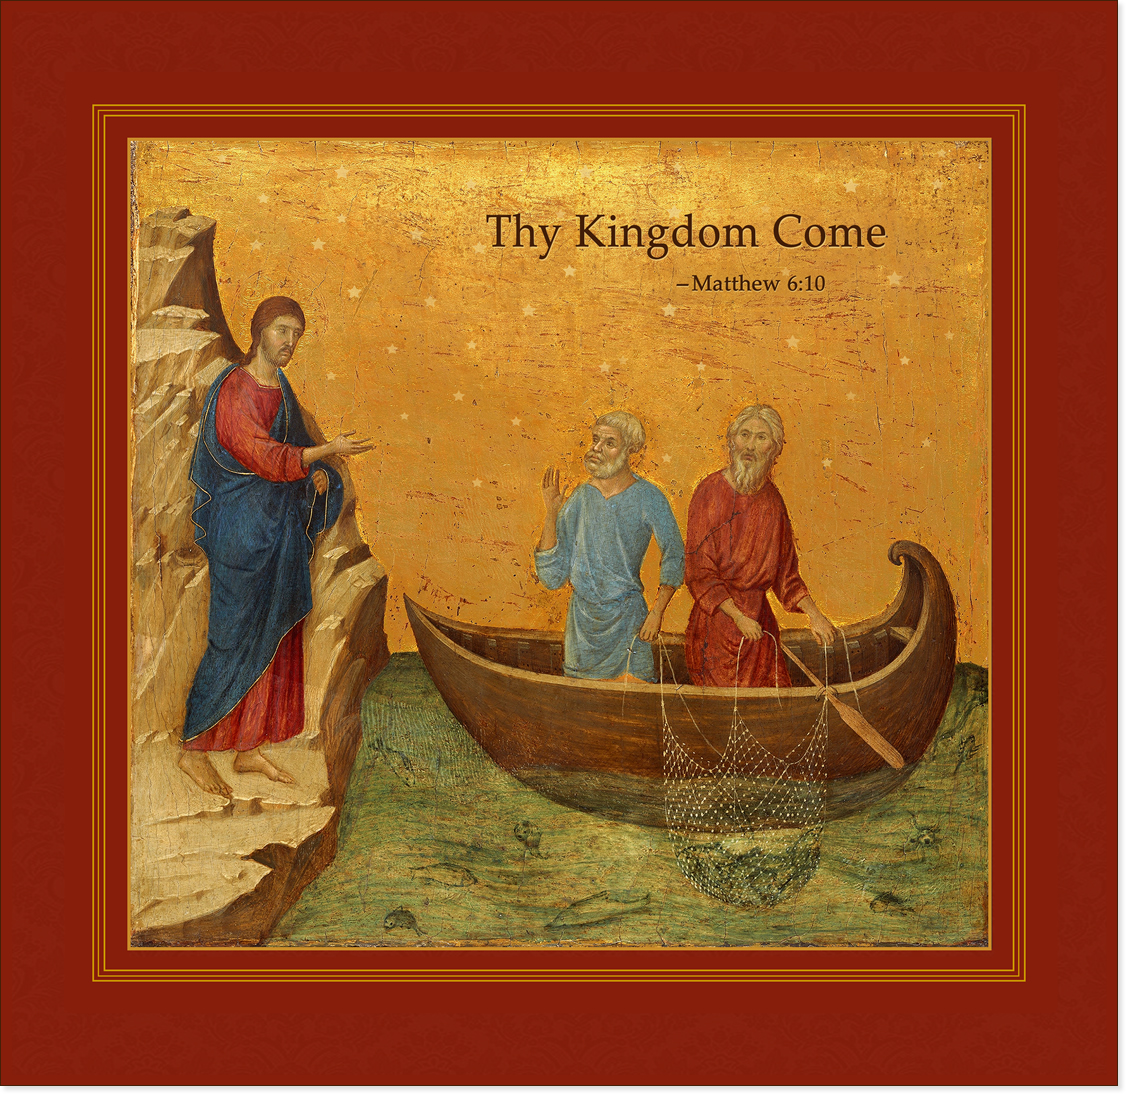 Christ with Fishermen -' Thy Kingdom Come'